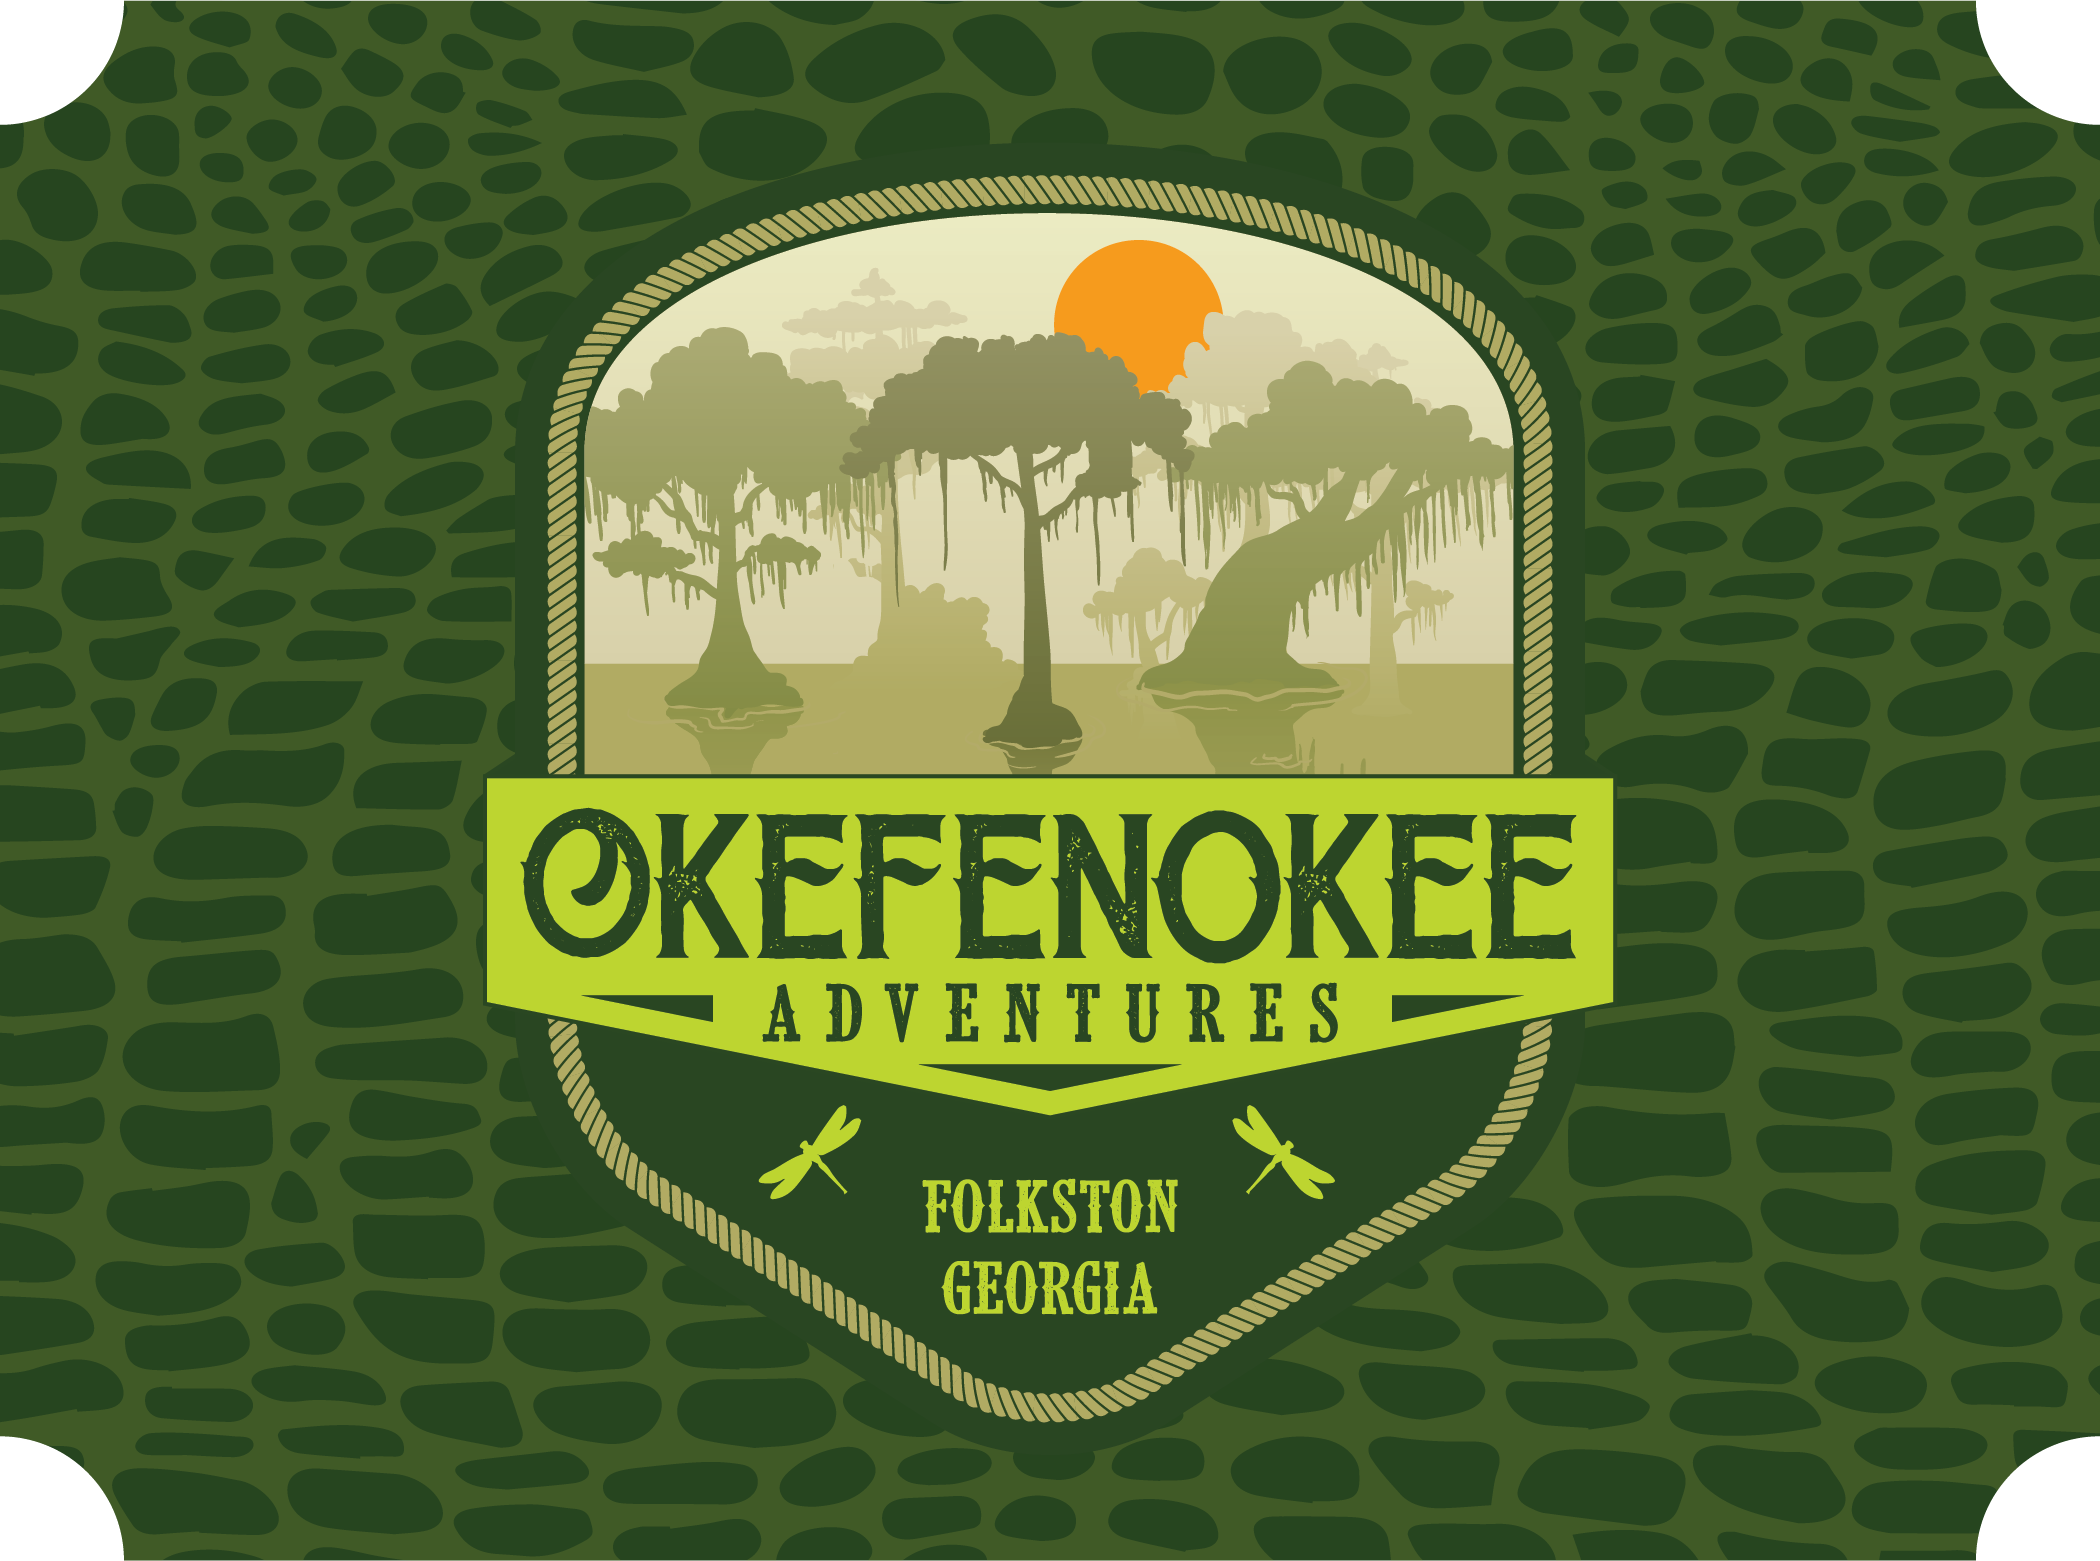 Okefenokee Adventures